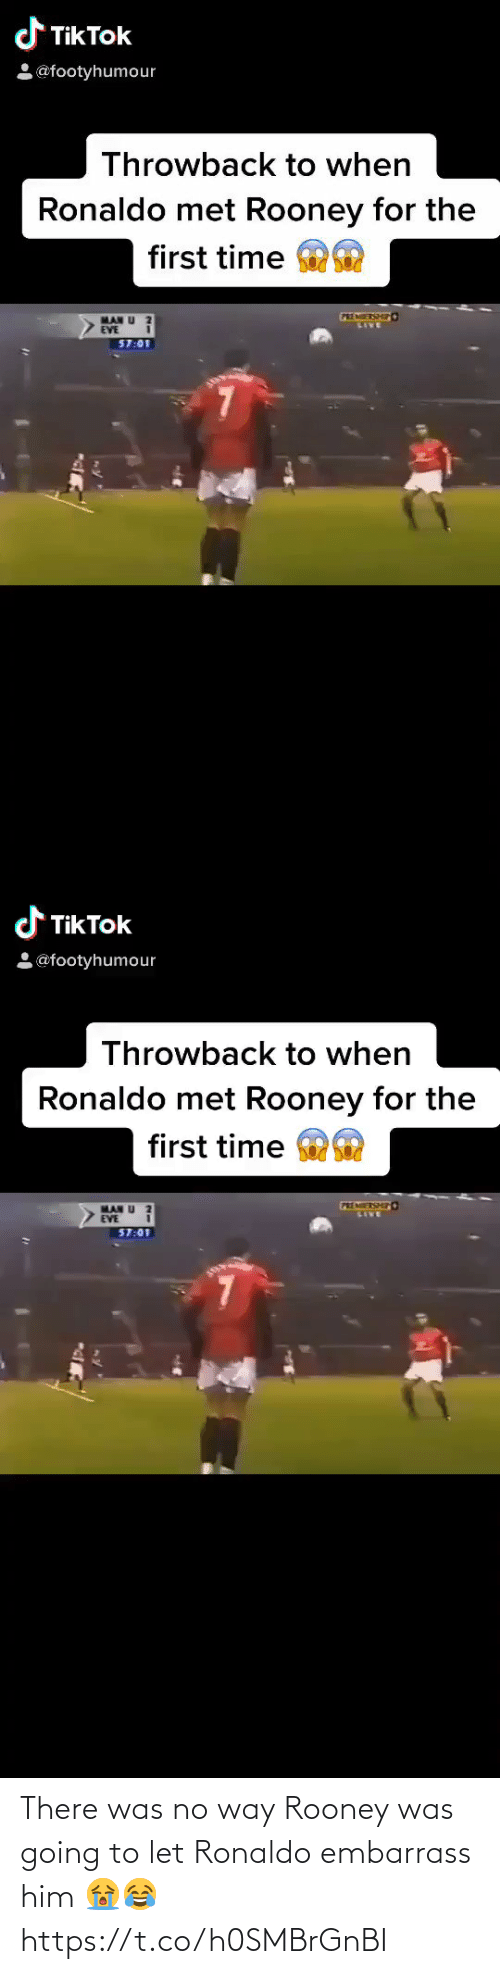 Ronaldo: There was no way Rooney was going to let Ronaldo embarrass him 😭😂 https://t.co/h0SMBrGnBI